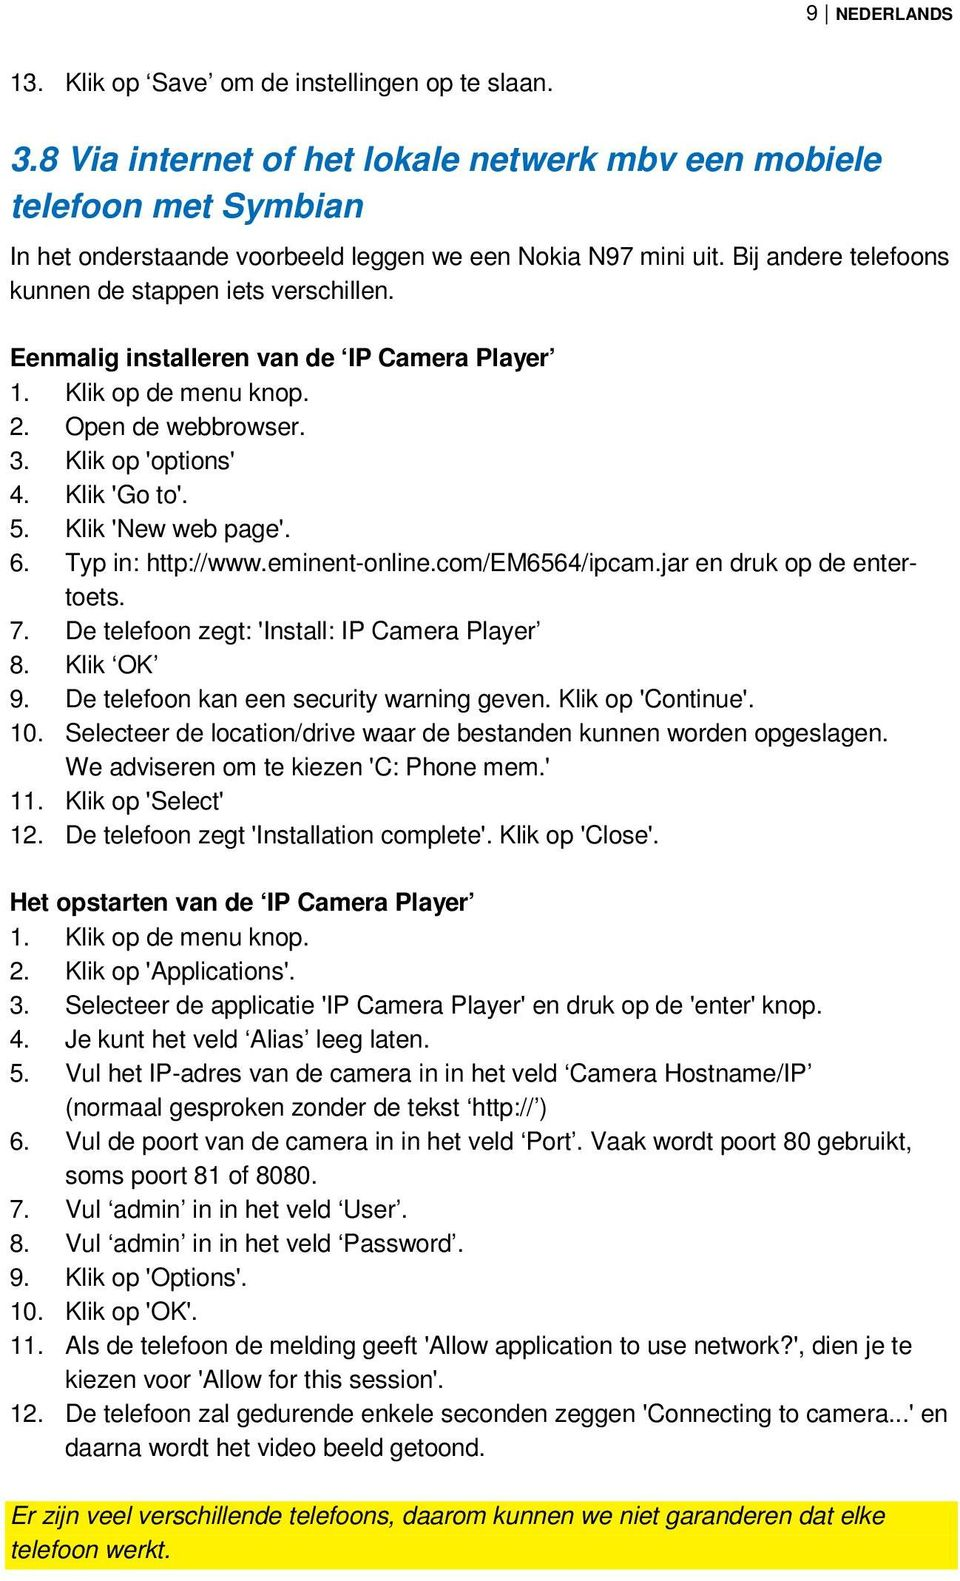 Eenmalig installeren van de IP Camera Player 1. Klik op de menu knop. 2. Open de webbrowser. 3. Klik op 'options' 4. Klik 'Go to'. 5. Klik 'New web page'. 6. Typ in: http://www.eminent-online.